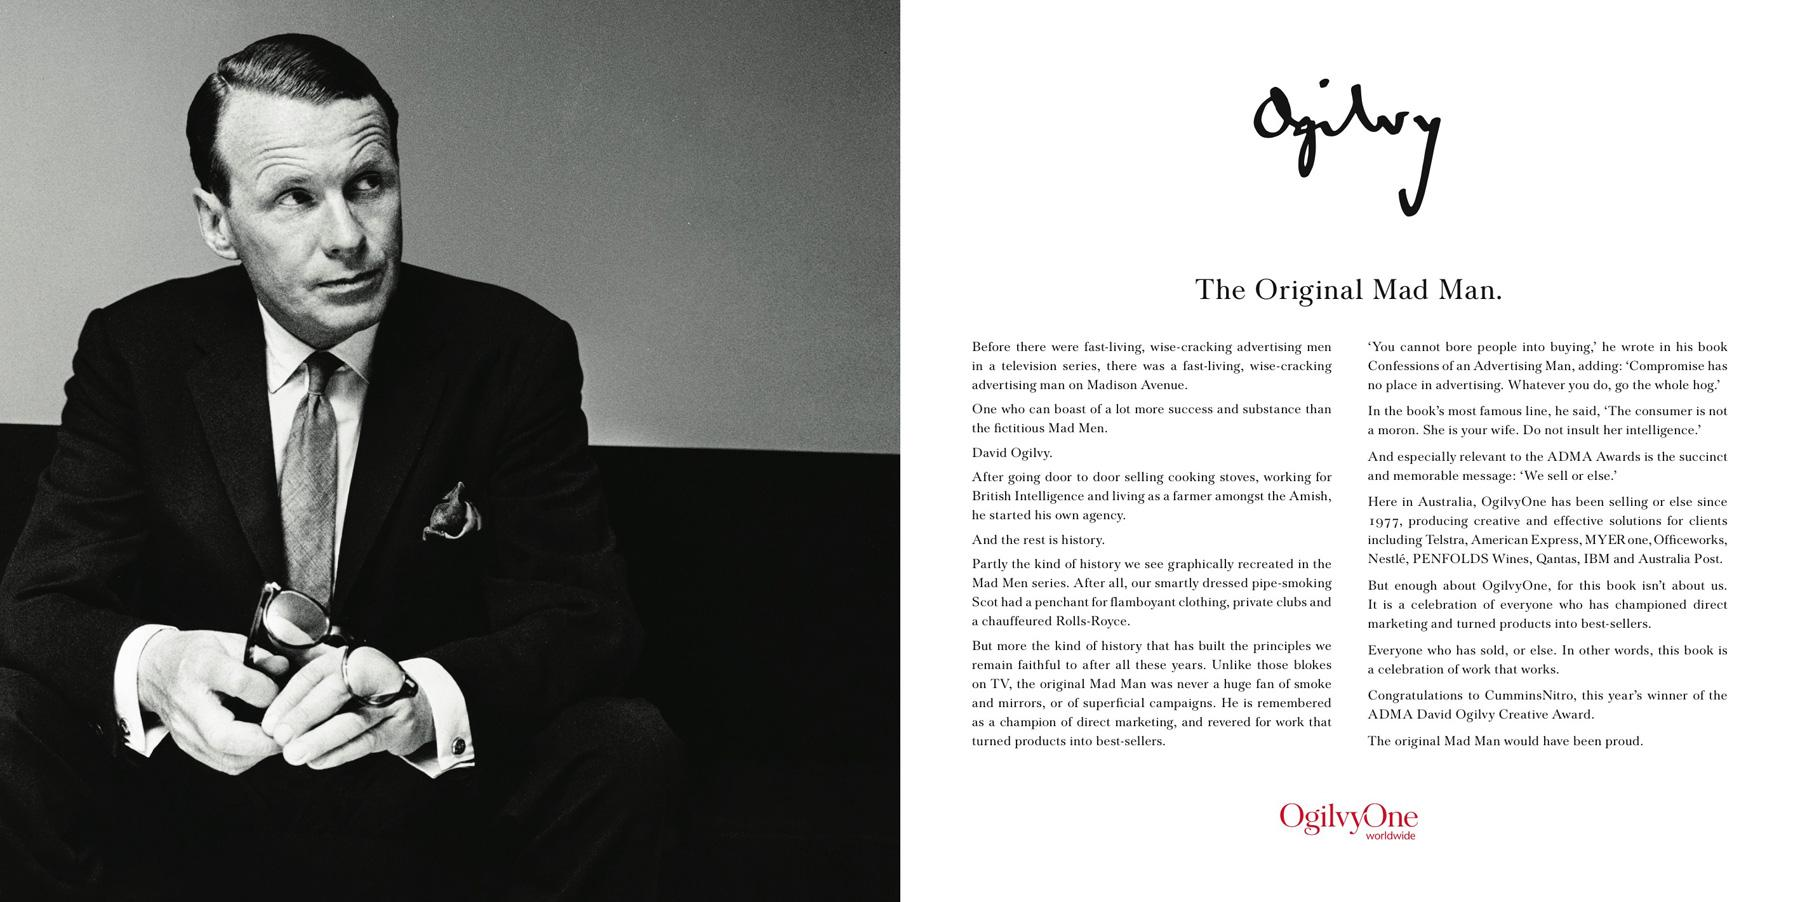 David Ogilvy, the Father of Advertising. Image credit - Confessions of an Advertising Man